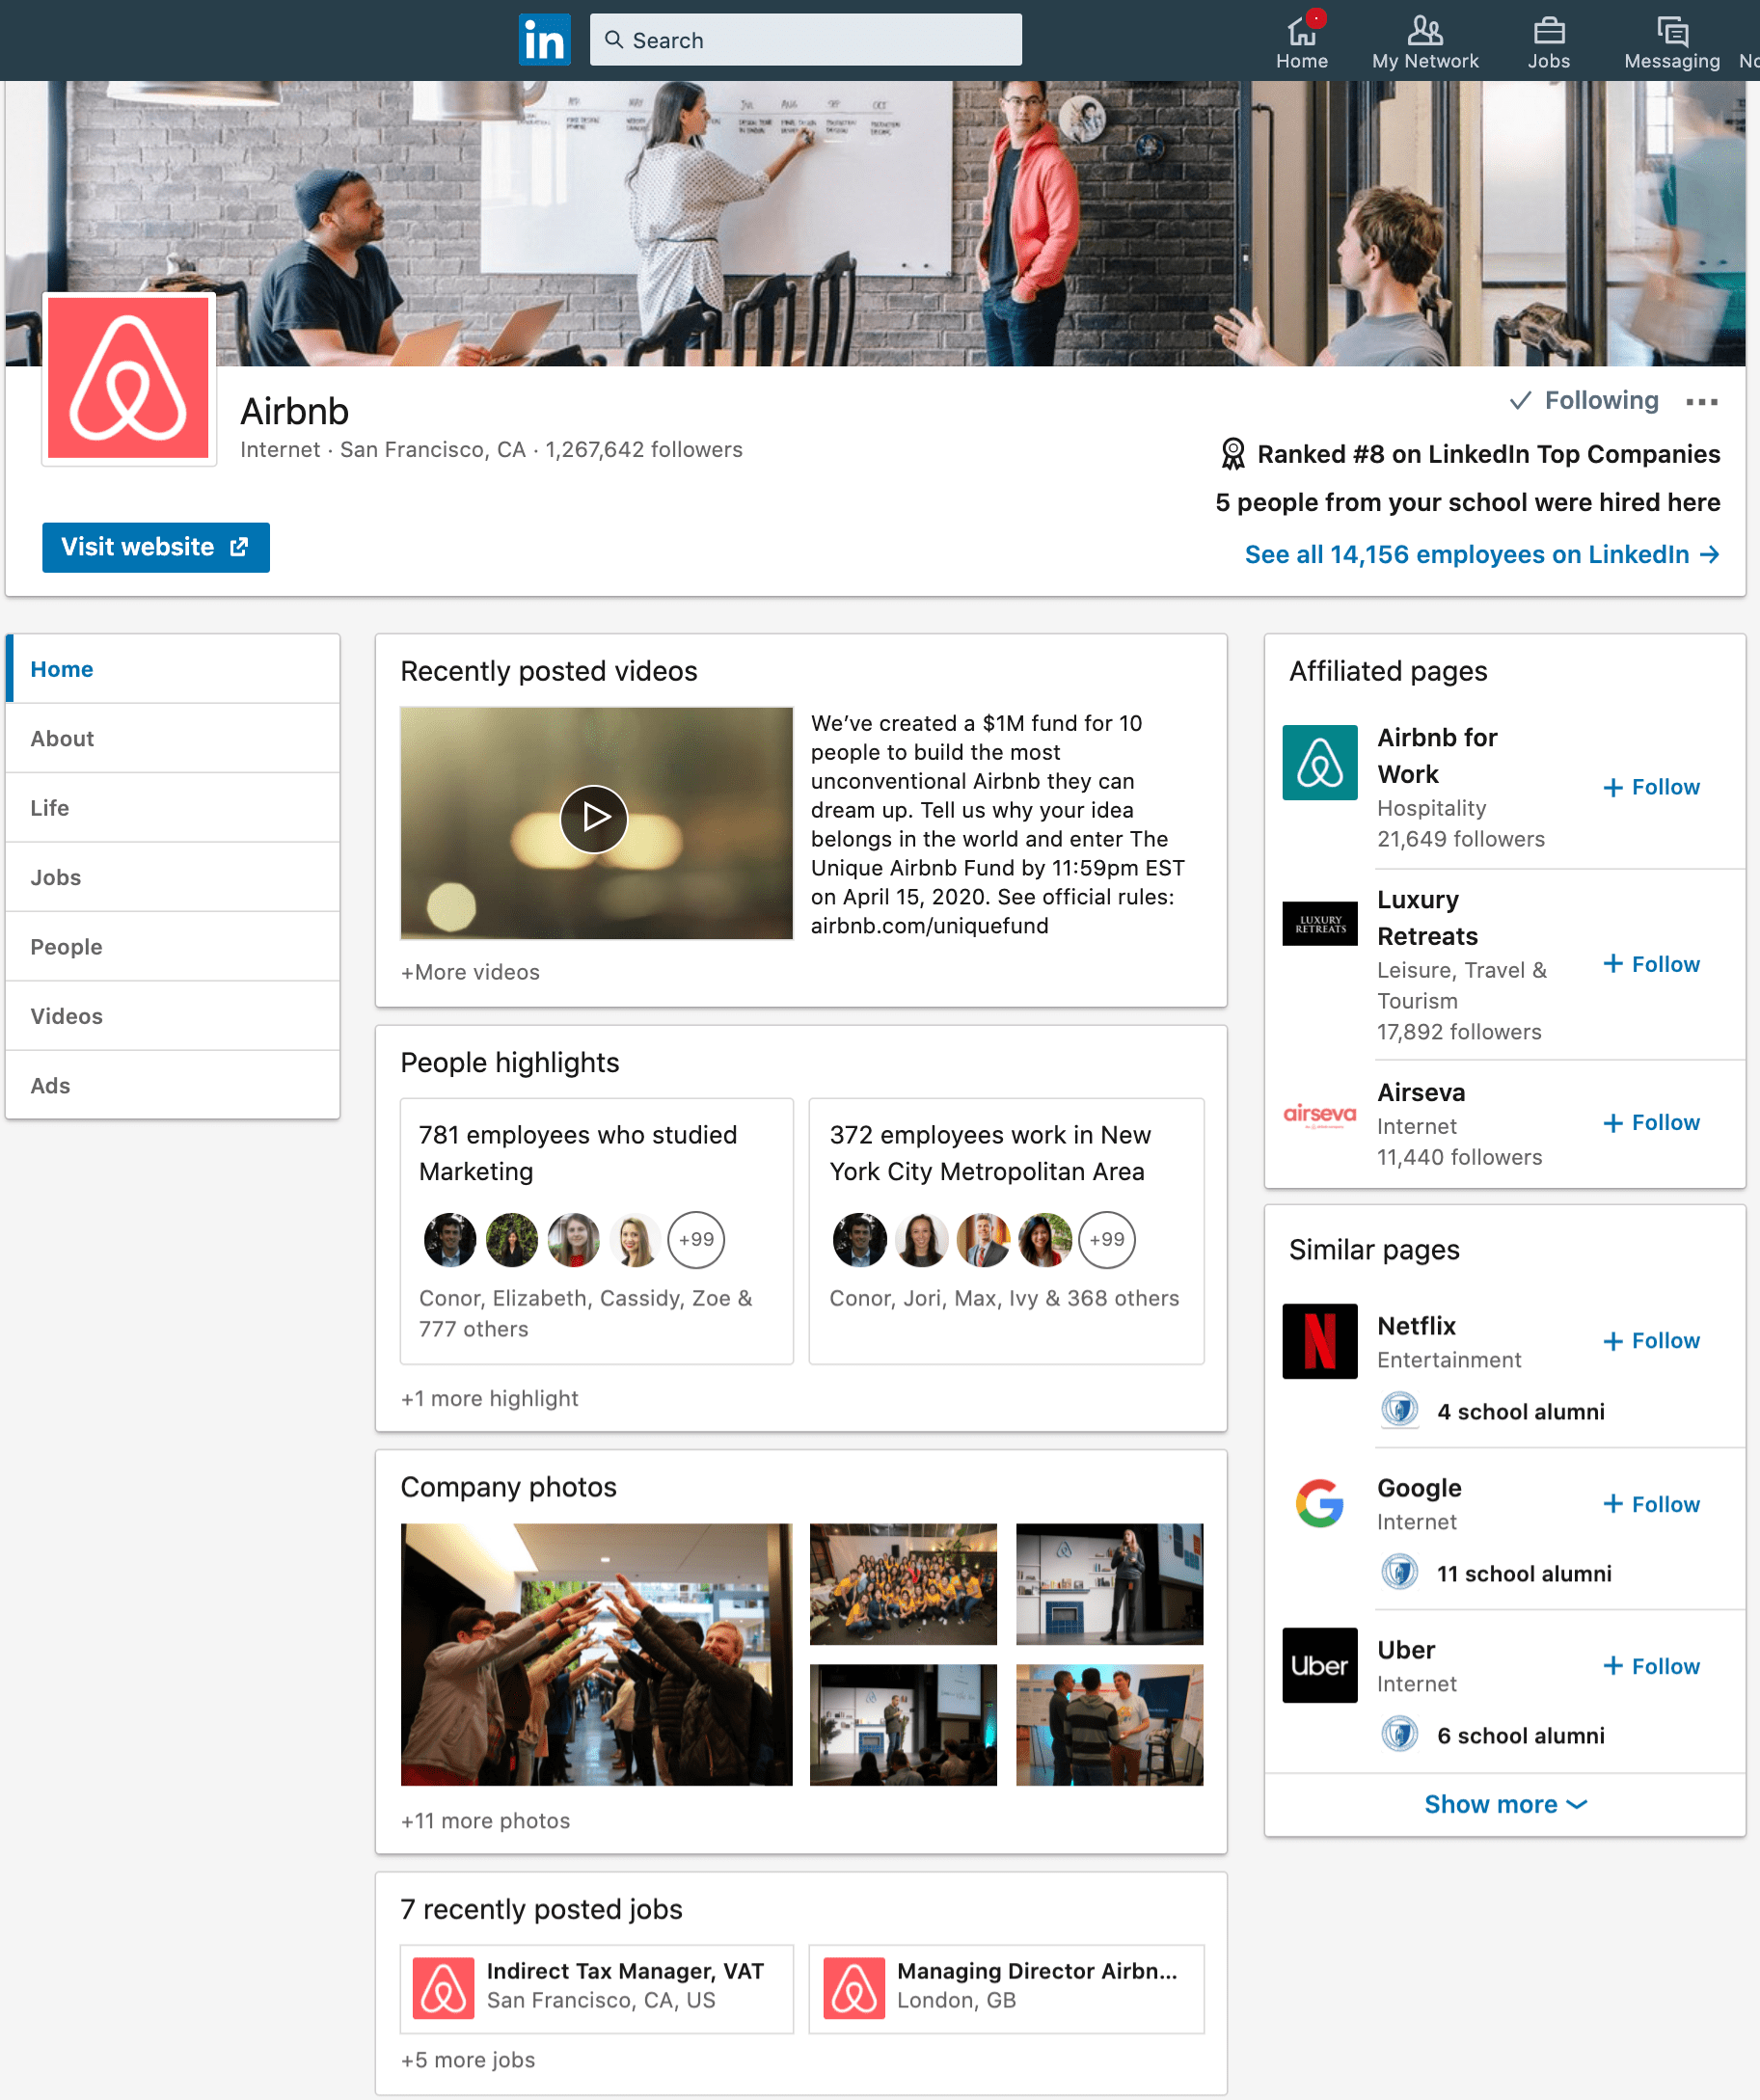 Airbnb_Overview_LinkedIn